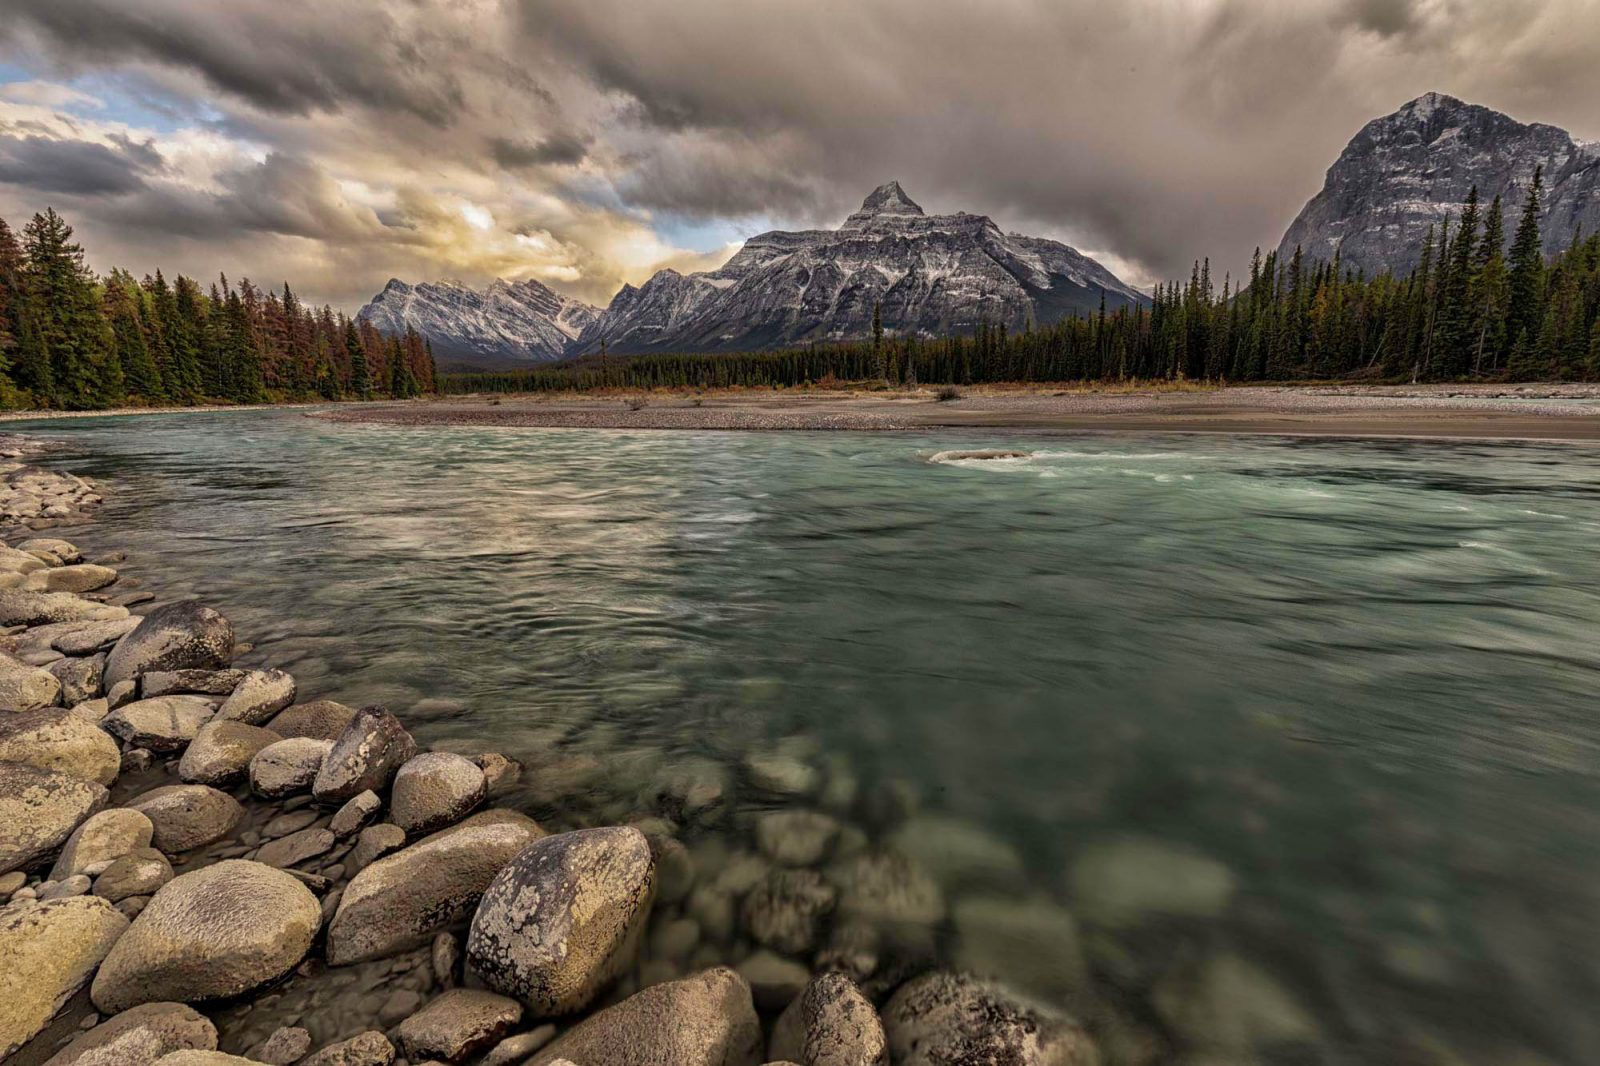 Canadian Rockies before the storm